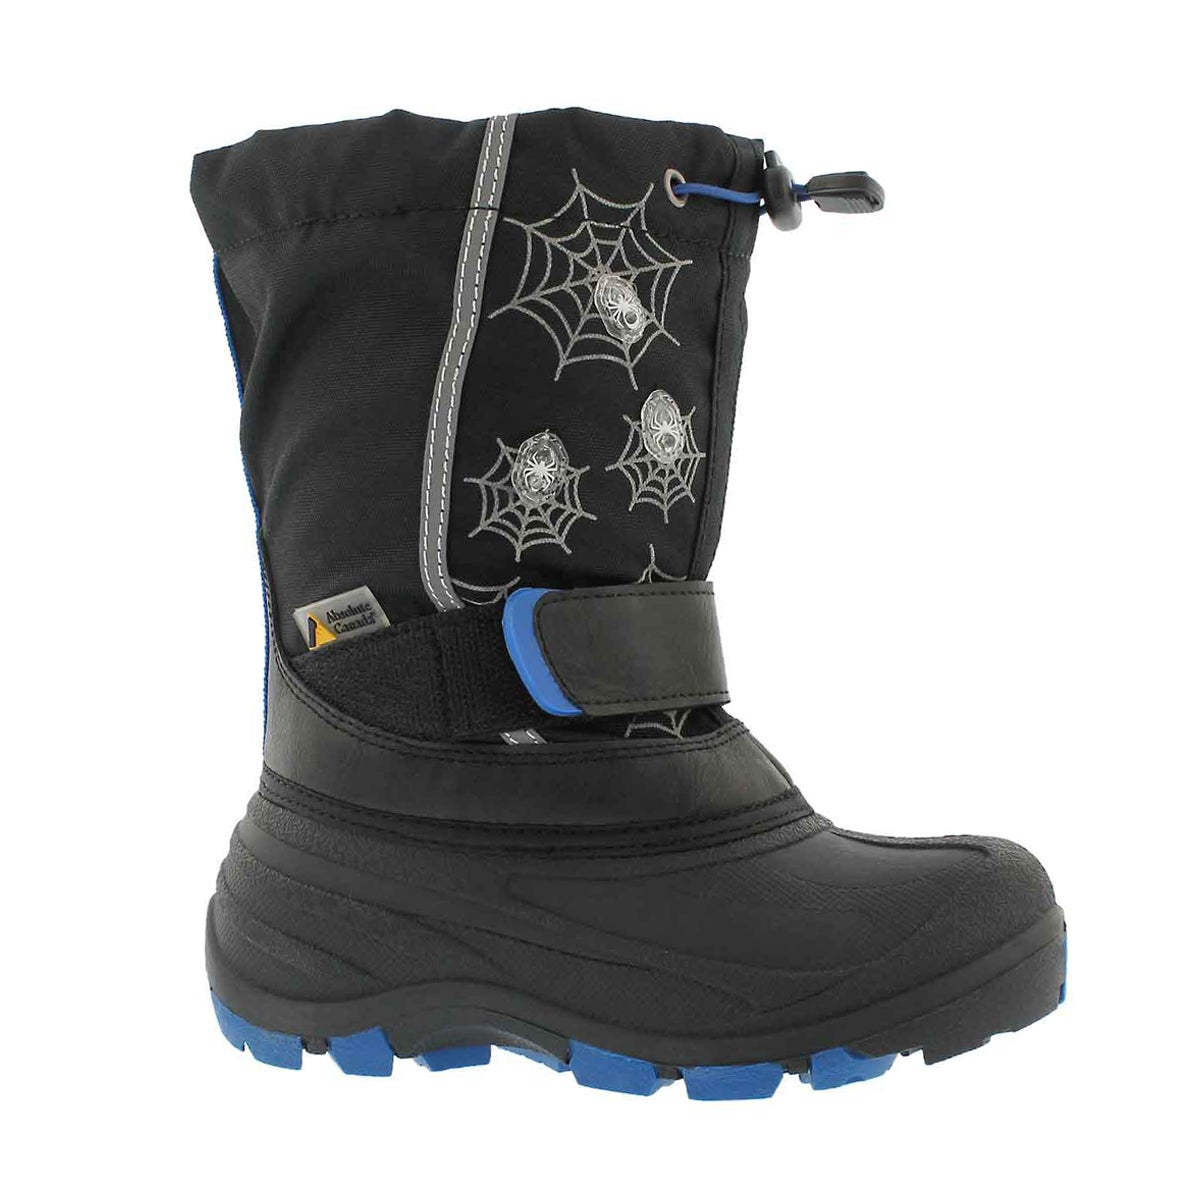 Bys Frostweb blu wp light up winter boot